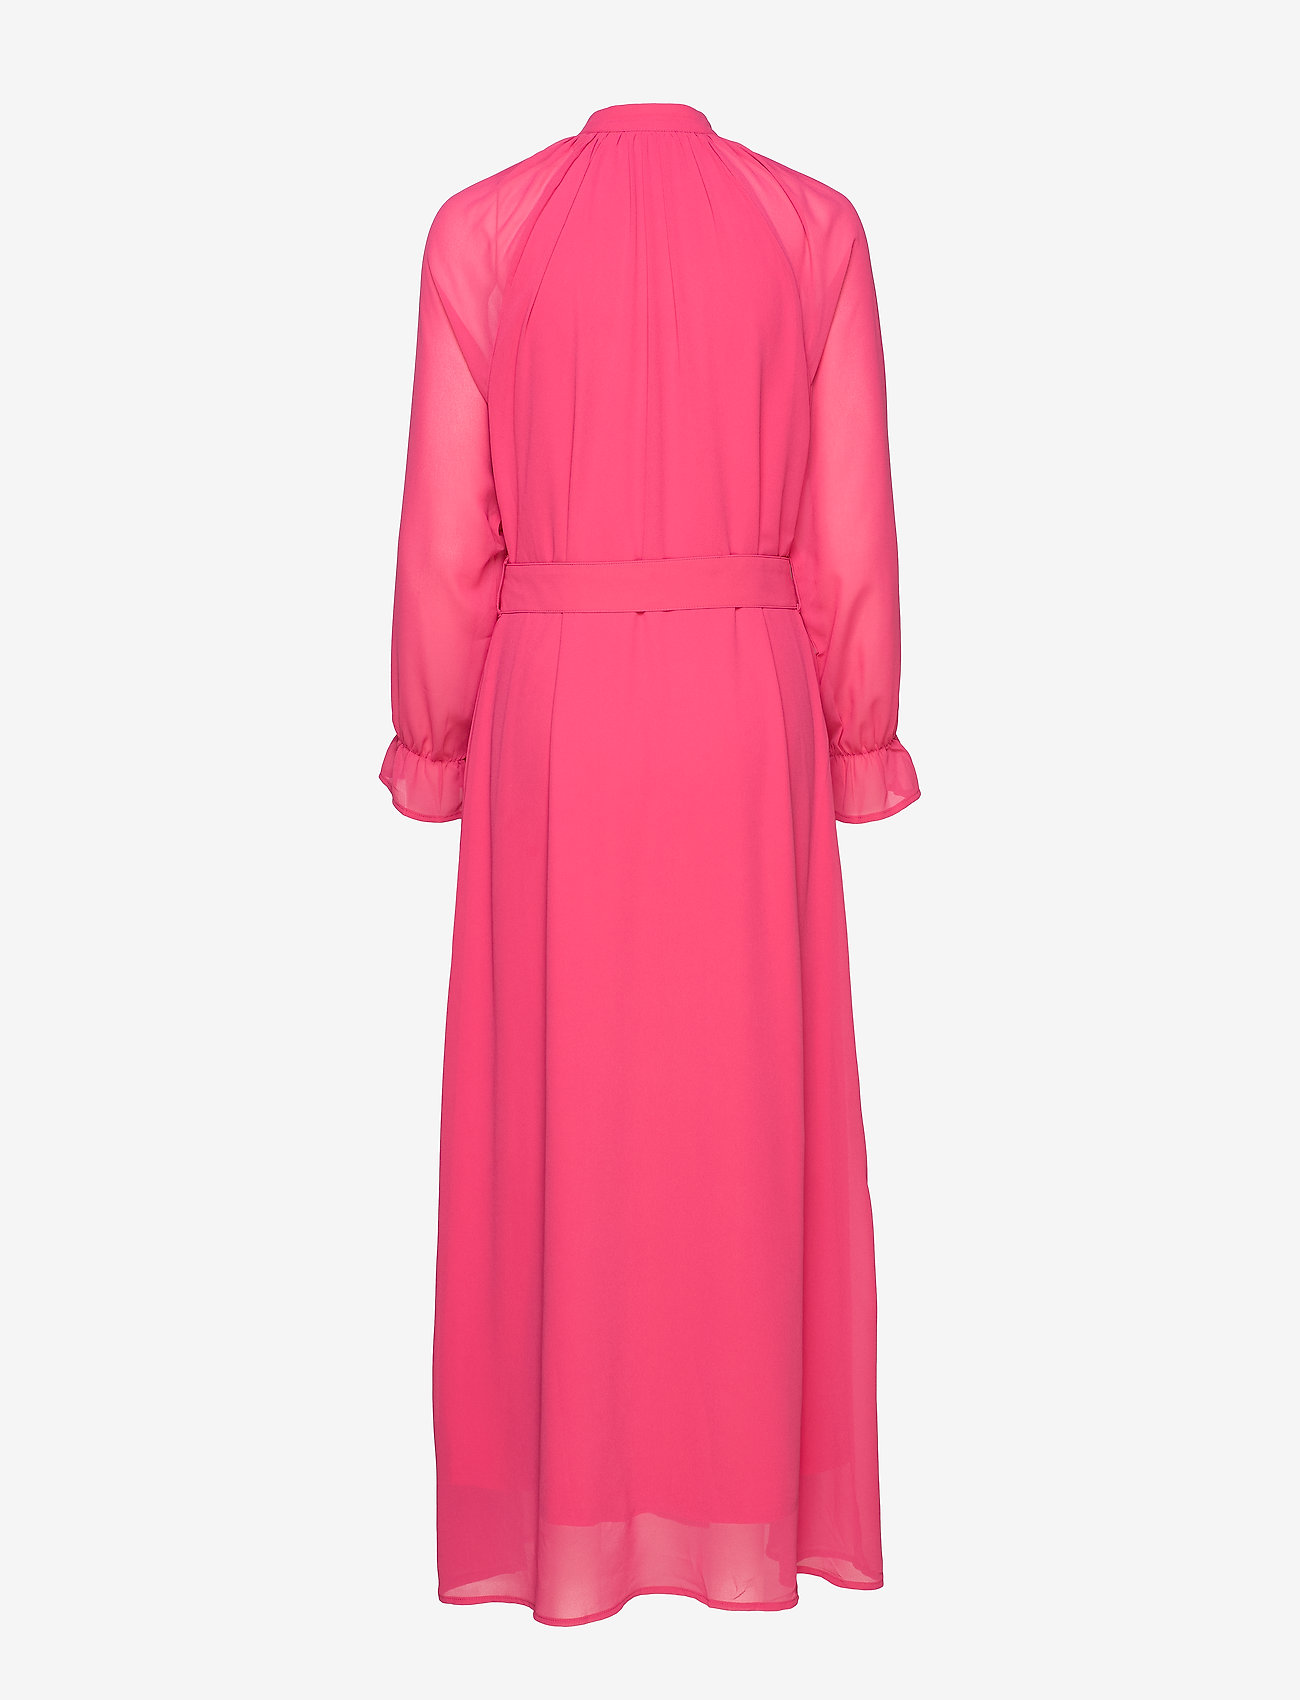 Coster Copenhagen - Dress w. buckle closure at waist - maksimekot - clear pink